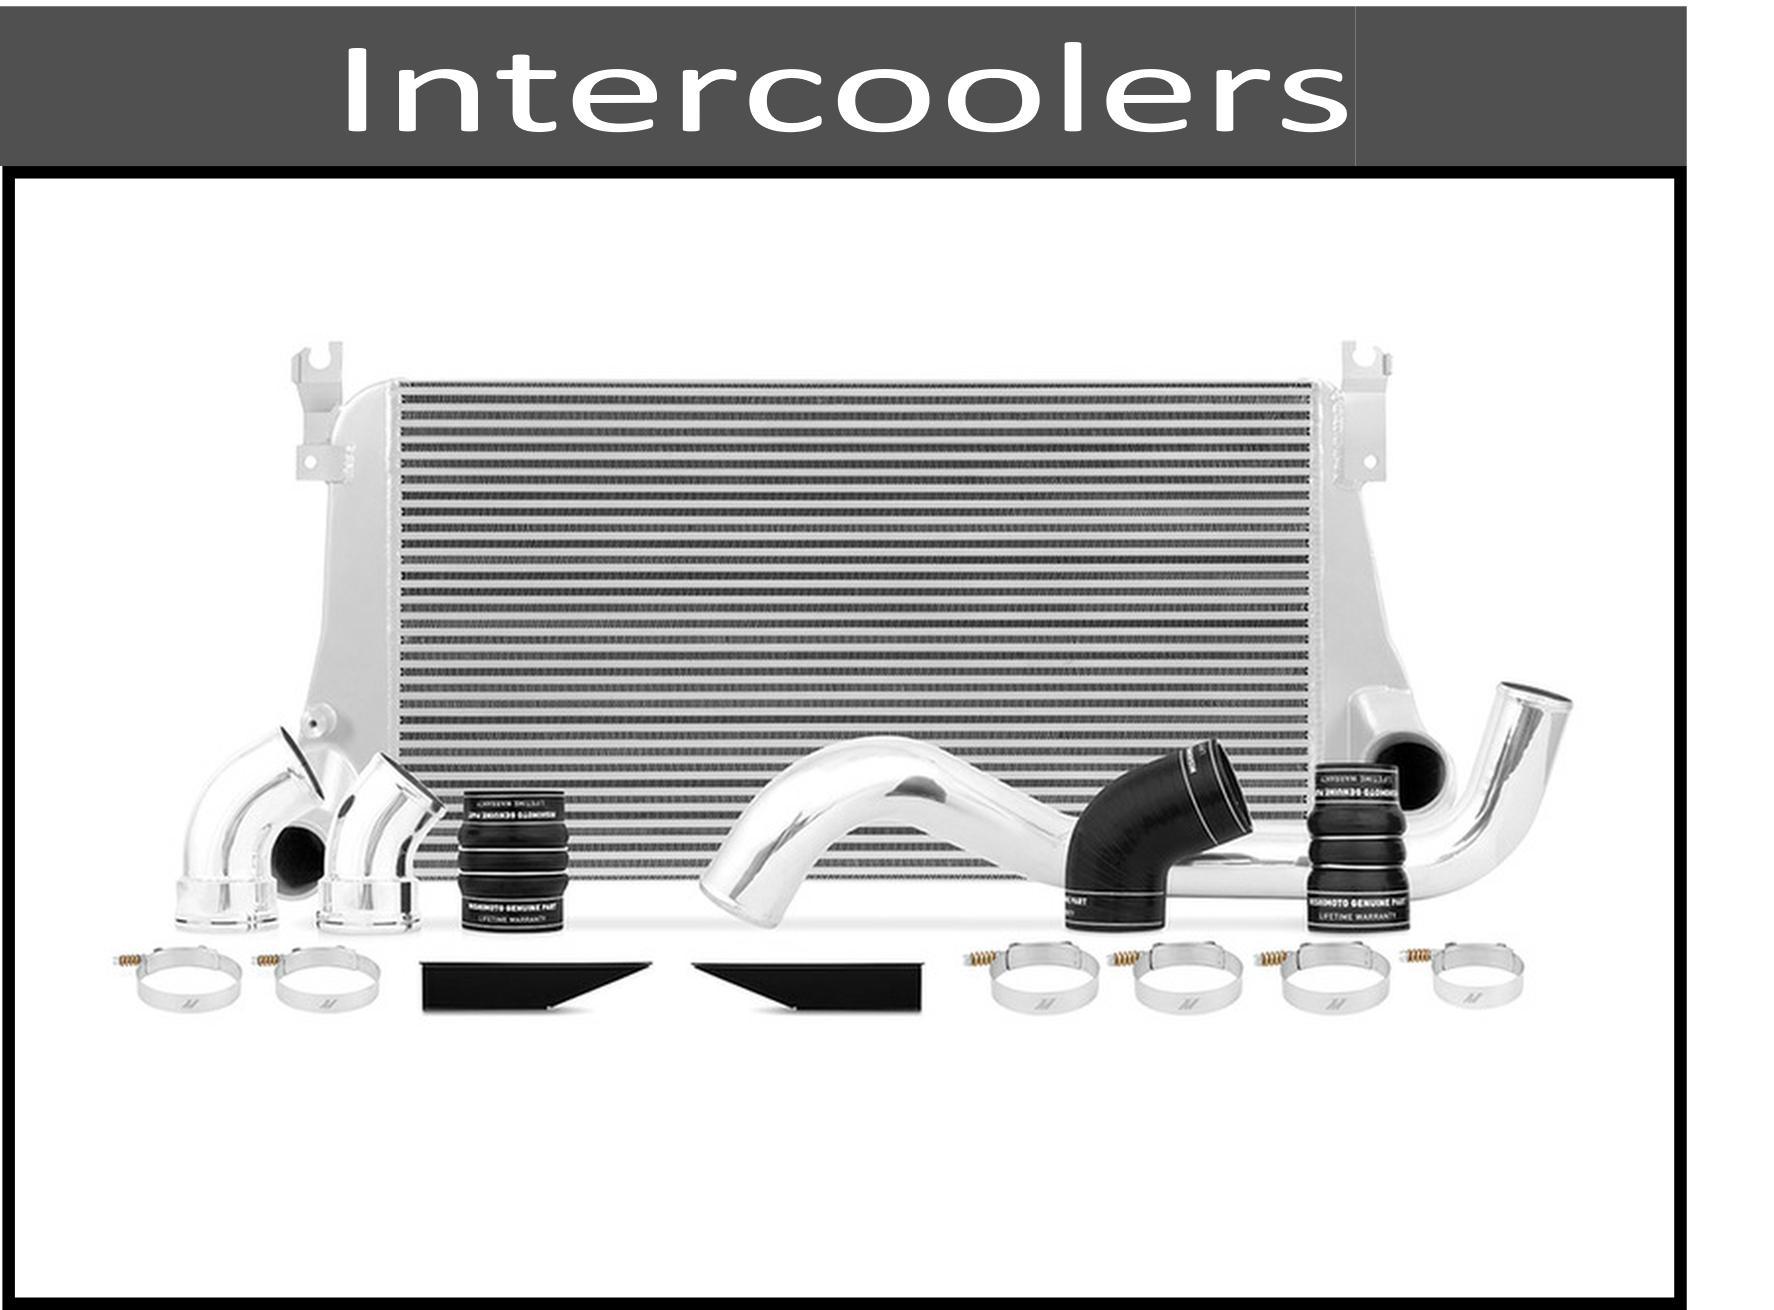 Intercoolers, Boots, and Piping